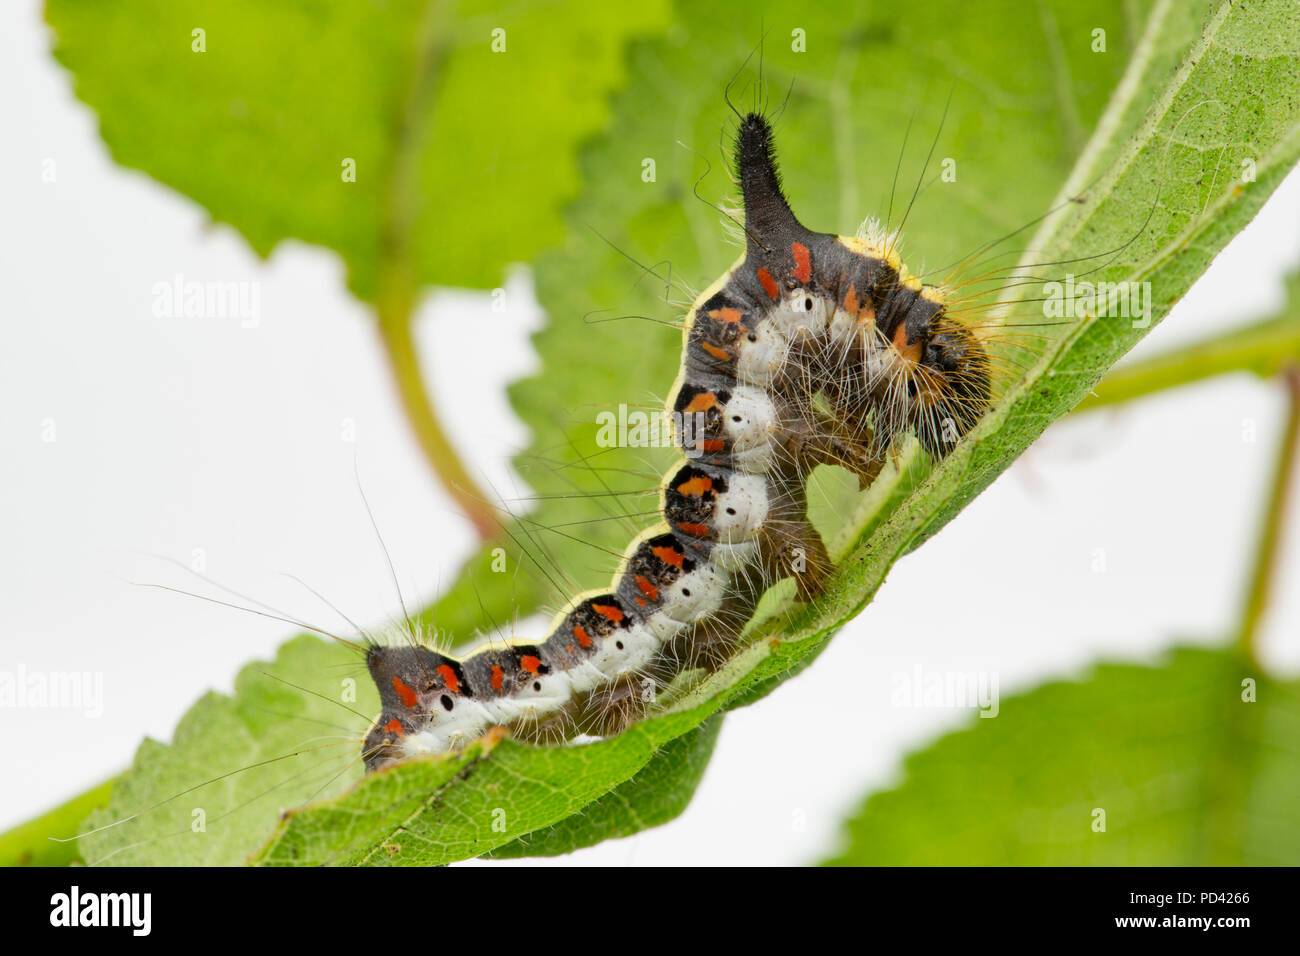 A Grey Dagger moth caterpillar, Acronicta psi, found feeding on bullace leaves photographed in a studio before release. North Dorset England UK GB - Stock Image